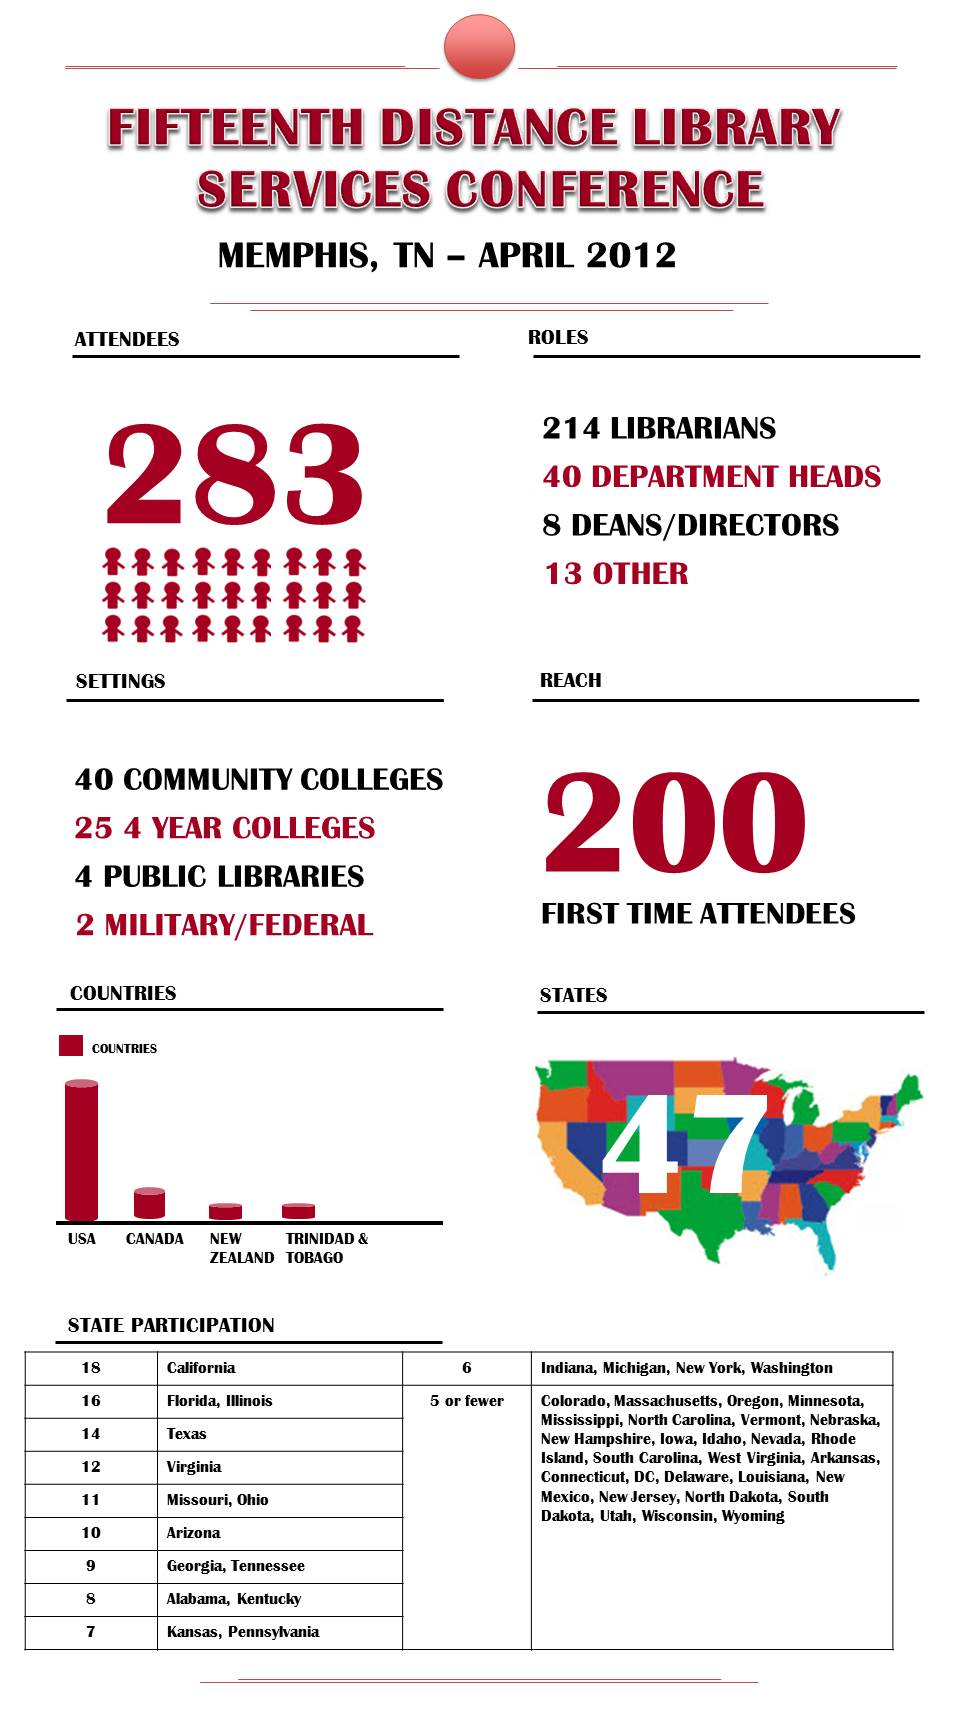 2012 Conference Demographics